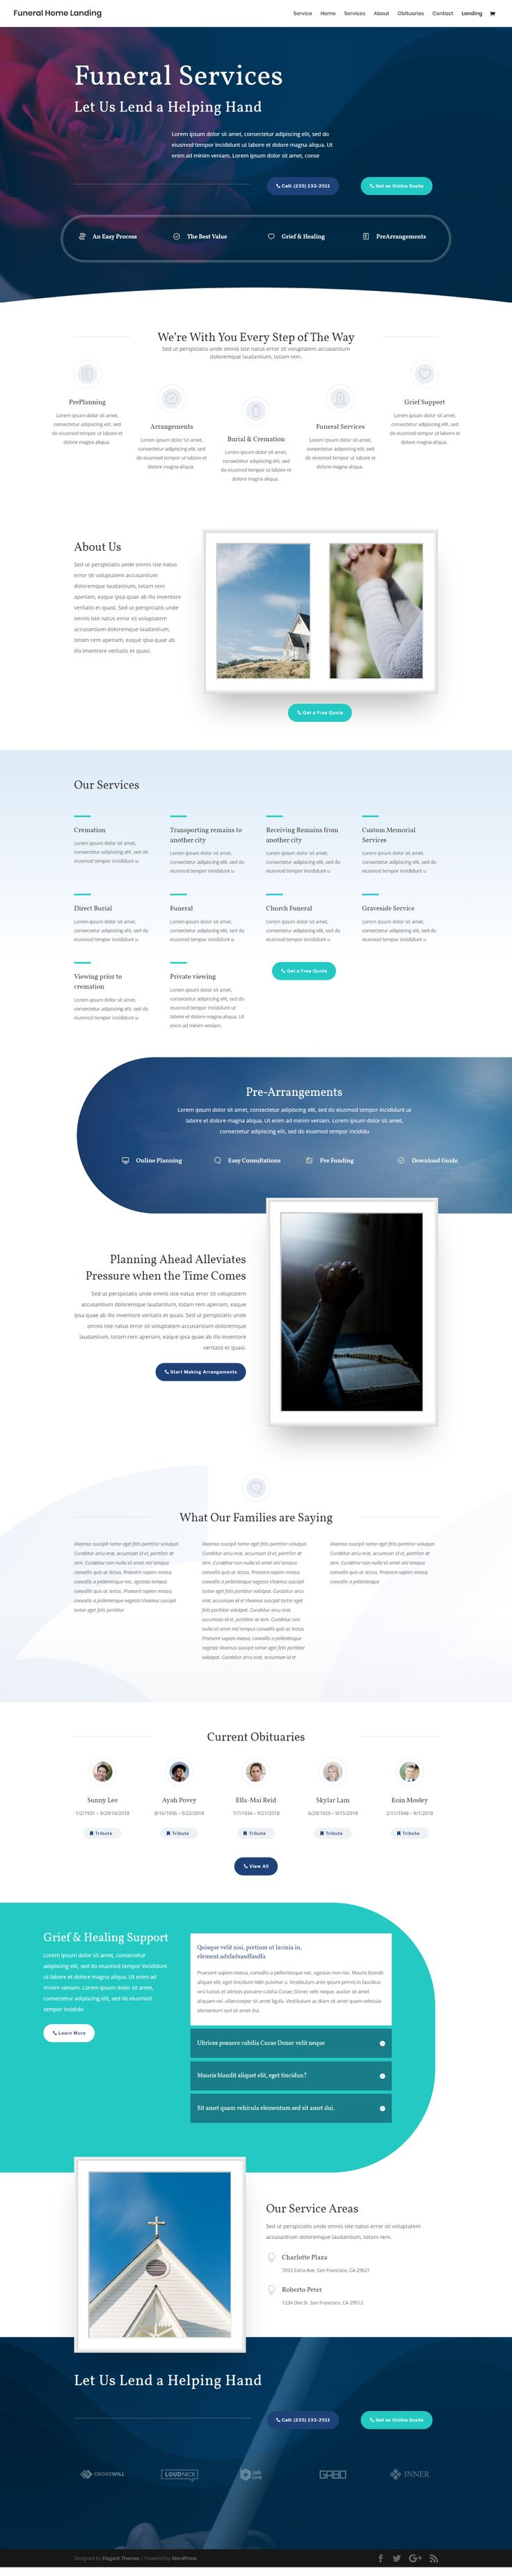 Free Funeral Home WordPress Theme Layout Template | Funeral Services Website Design Inspiration Idea